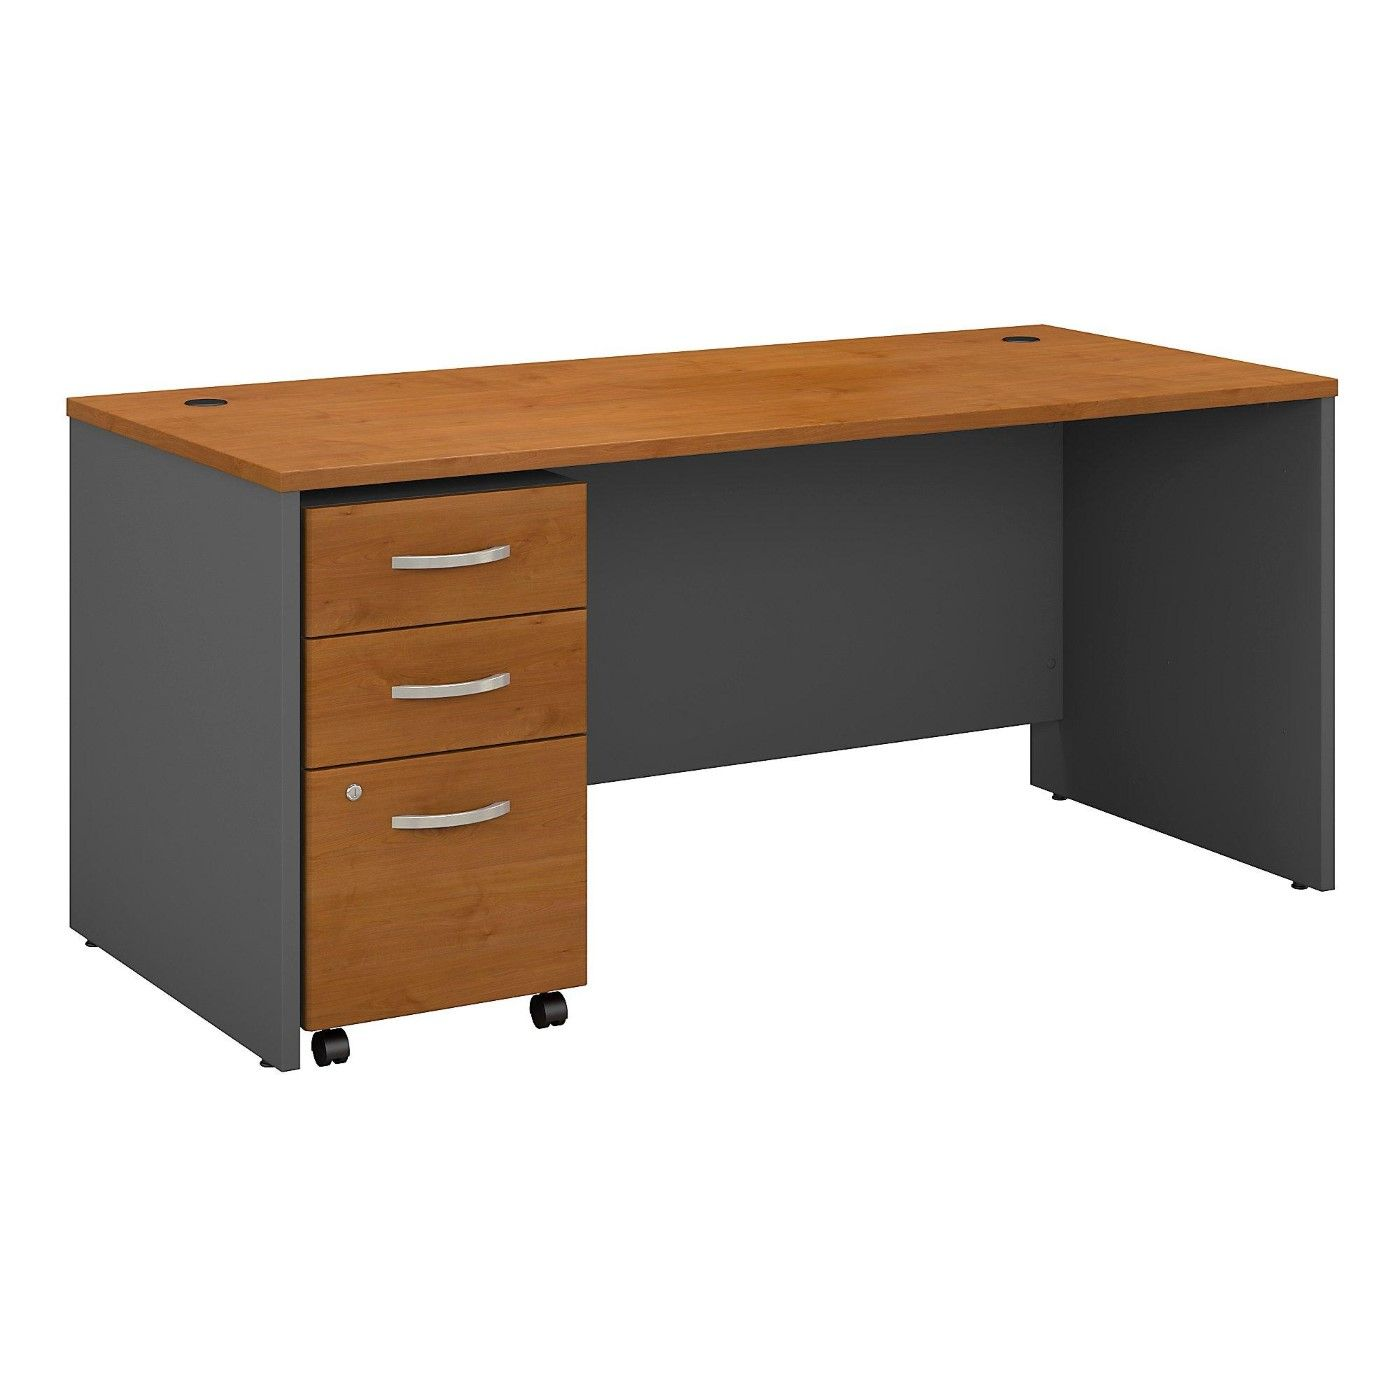 <font color=#c60><b>BUSH BUSINESS FURNITURE SERIES C 66W X 30D OFFICE DESK WITH MOBILE FILE CABINET. FREE SHIPPING</font></b></font></b>